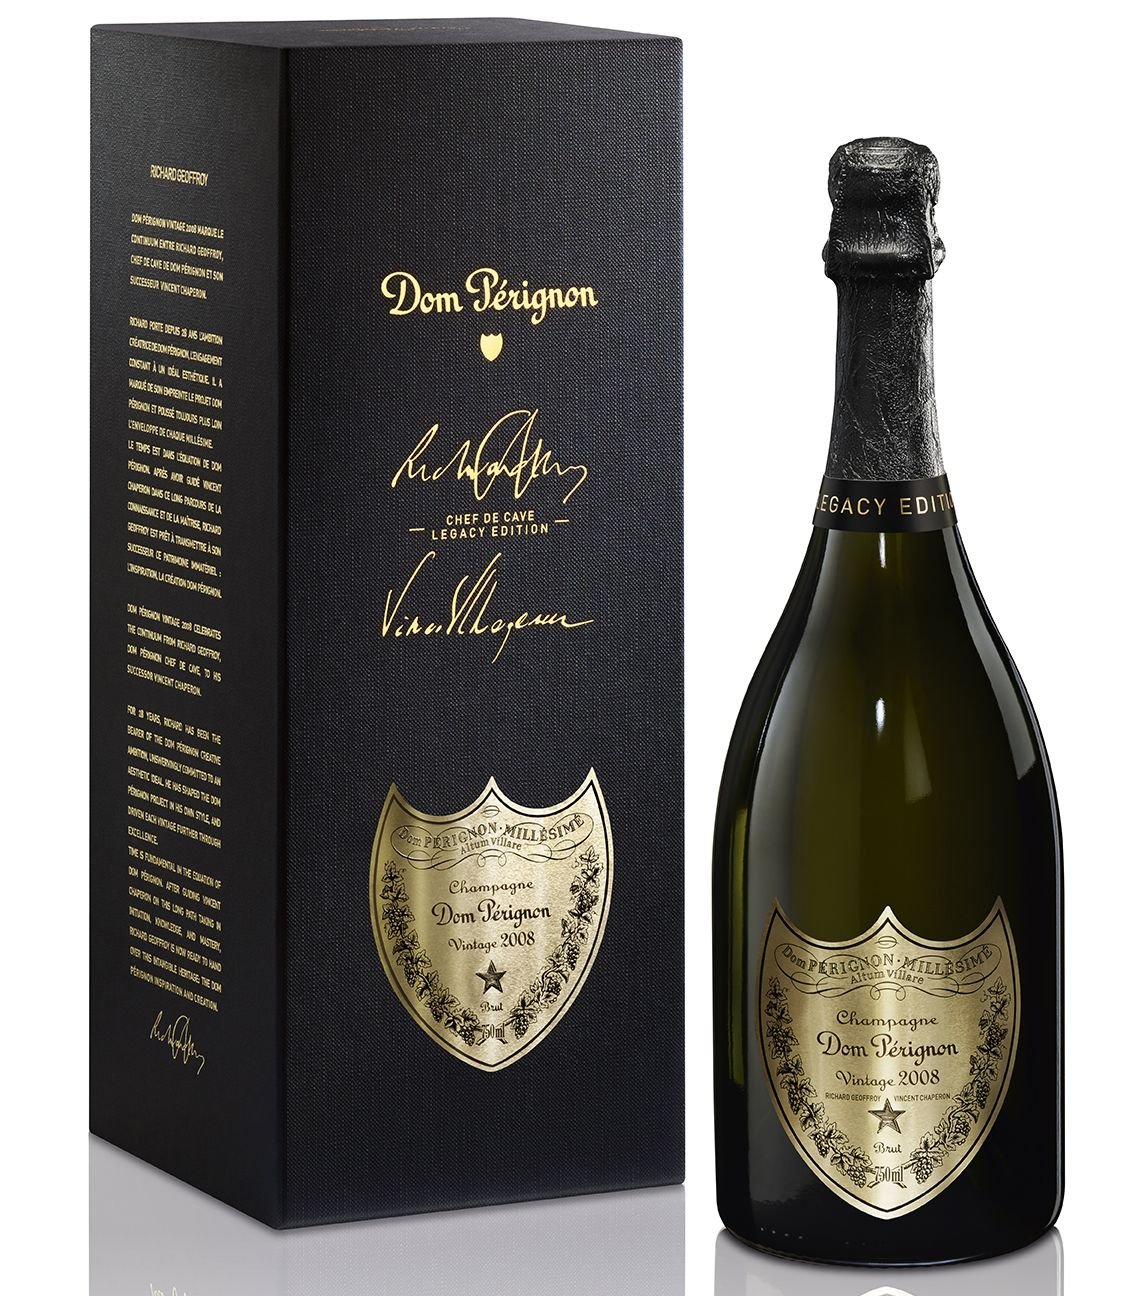 Dom Perignon Chef de Cave Legacy Edition in Gift Box 2008 Gift Product Image